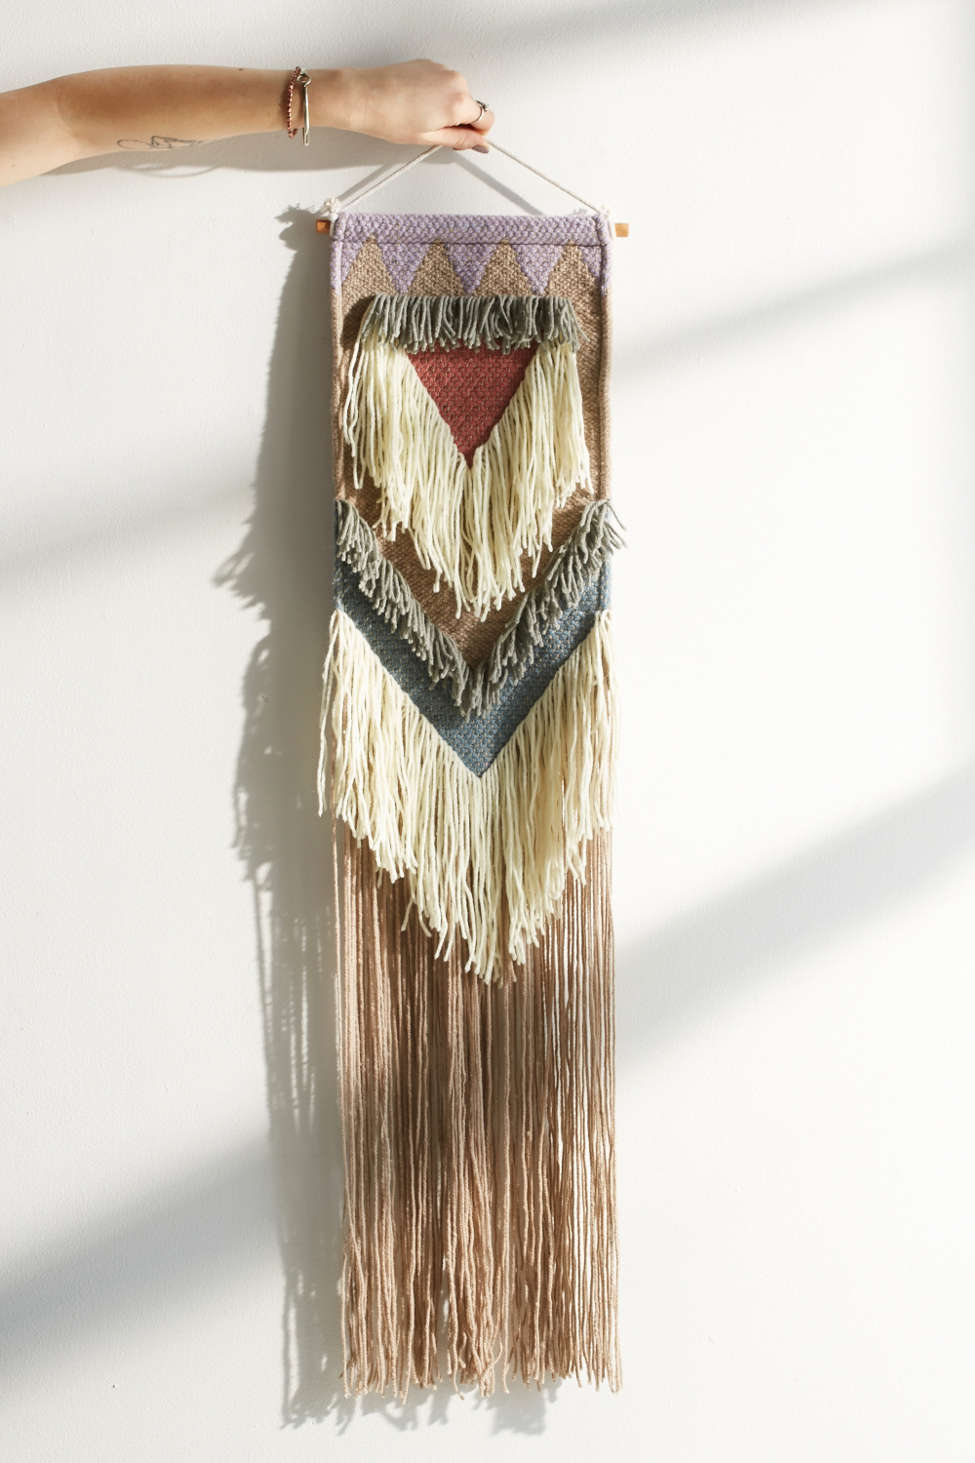 Woven Wall Hanging assembly home alva woven wall hanging | urban outfitters